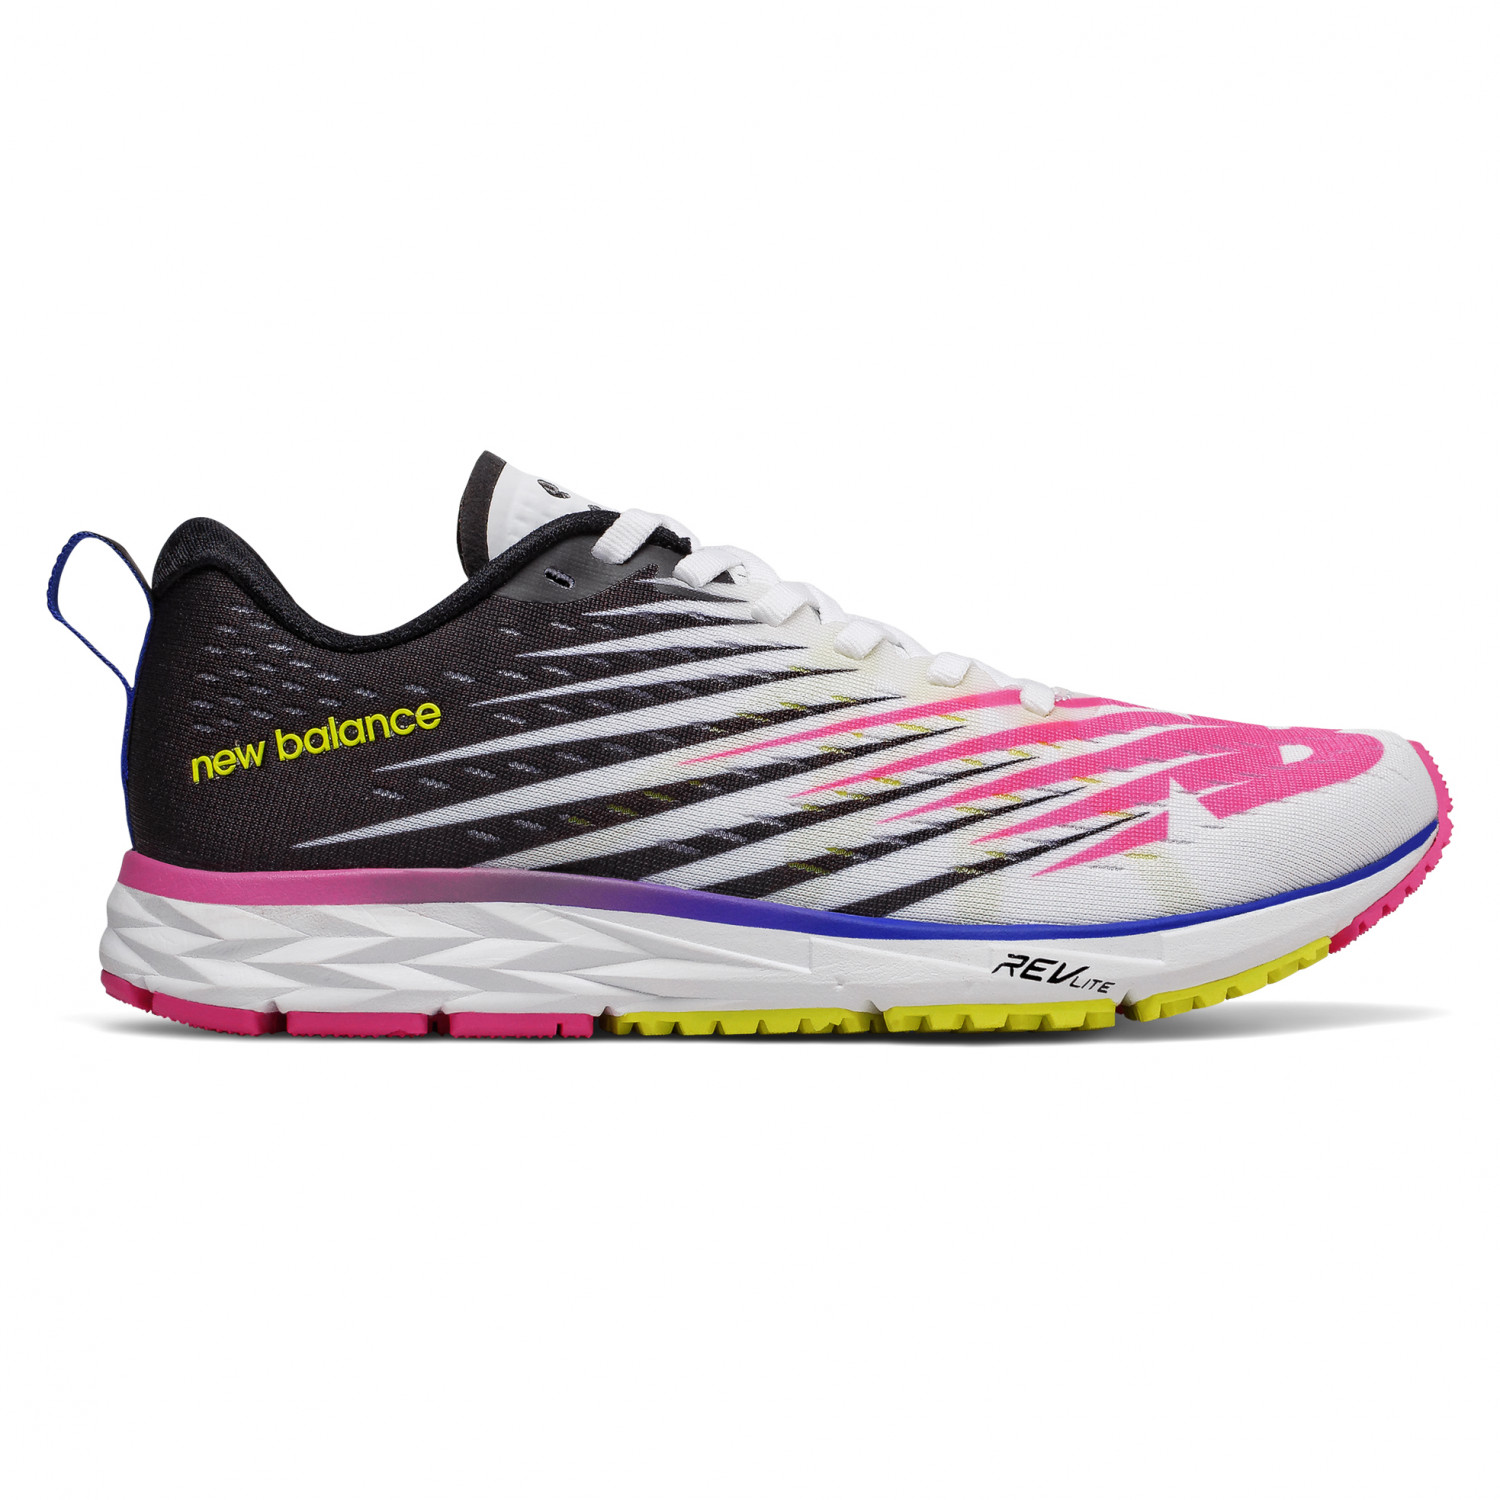 New Balance Race 1500 V5 - Running shoes Women's | Buy ...